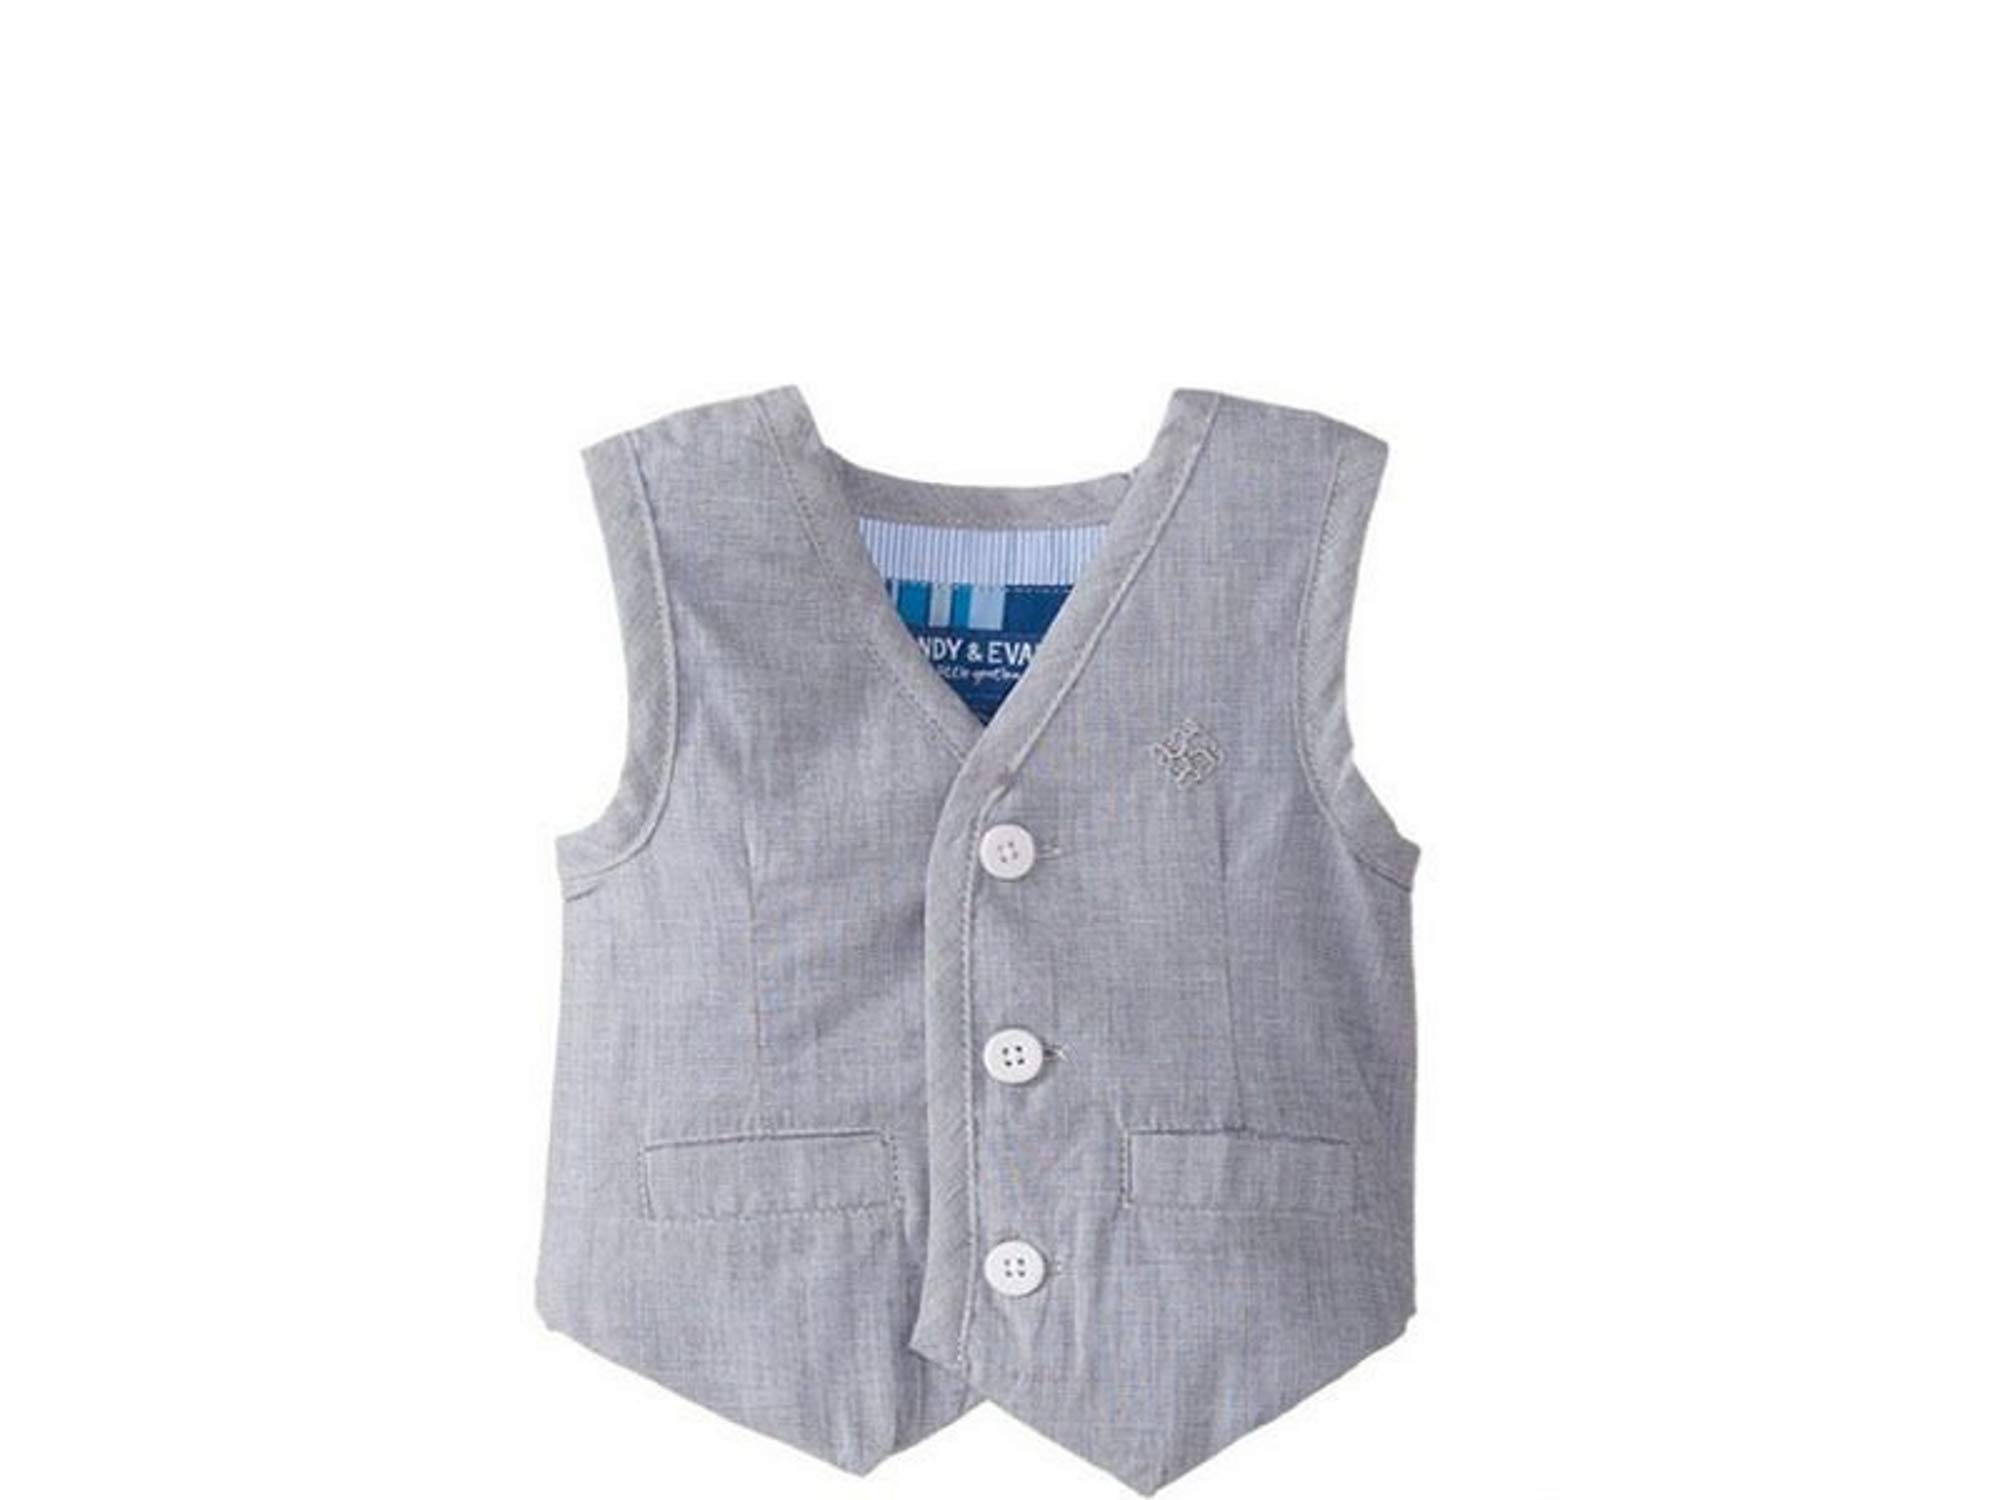 Andy & Evan Grey Little Boy's Chambray Vest (4T)